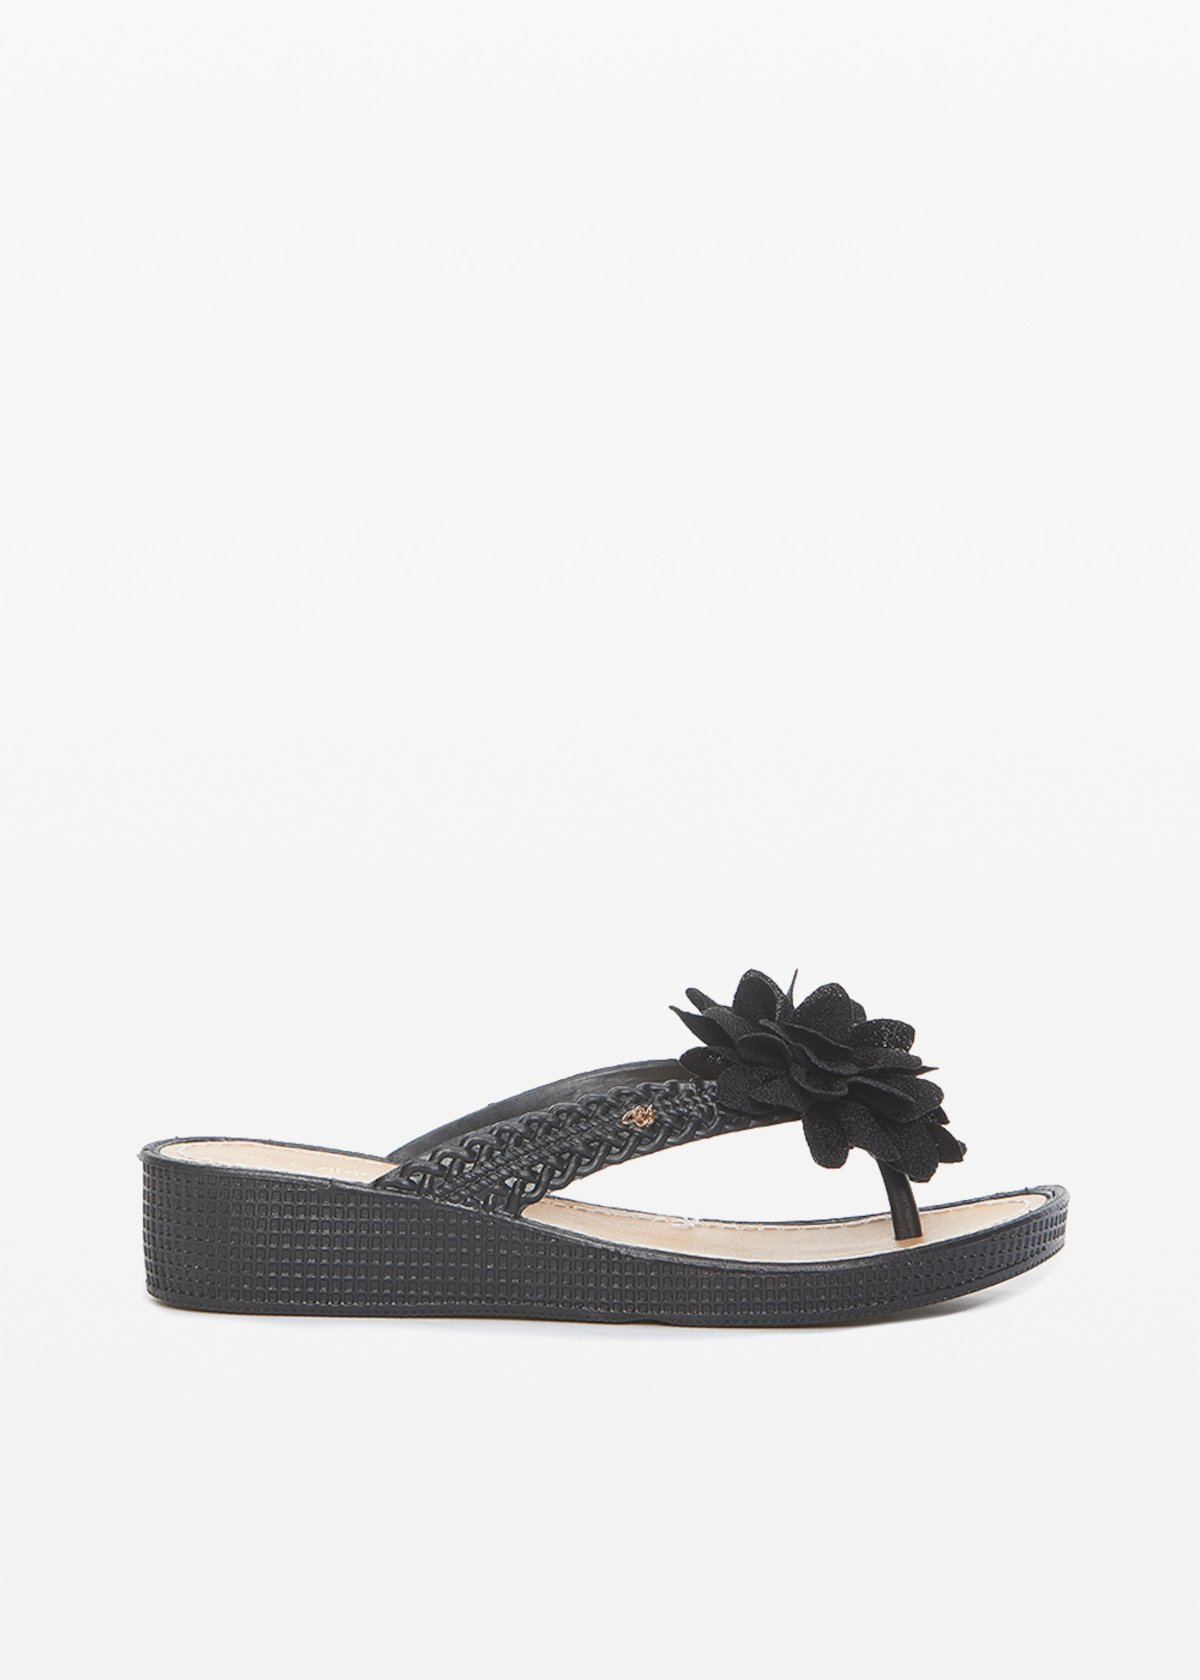 Clelia flops with flower and stones detail - Black - Woman